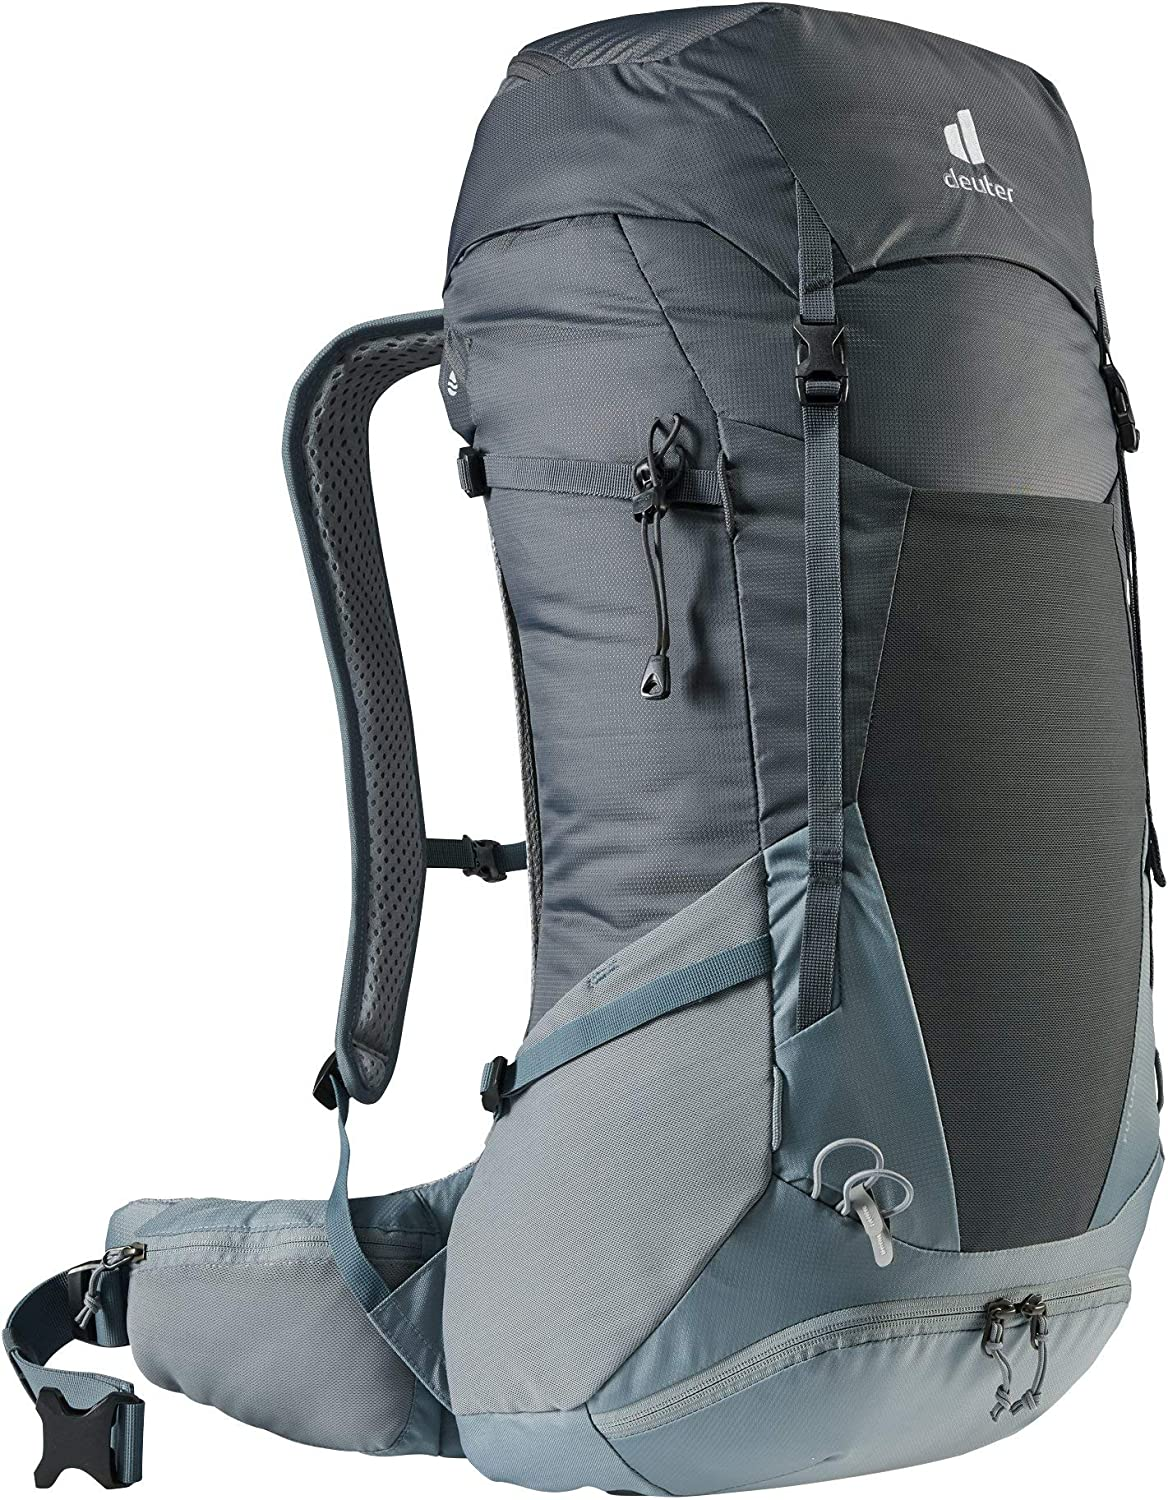 Deuter Free shipping on posting reviews Unisex– Adult's Futura 34 Hiking Graphite S Backpack EL New sales